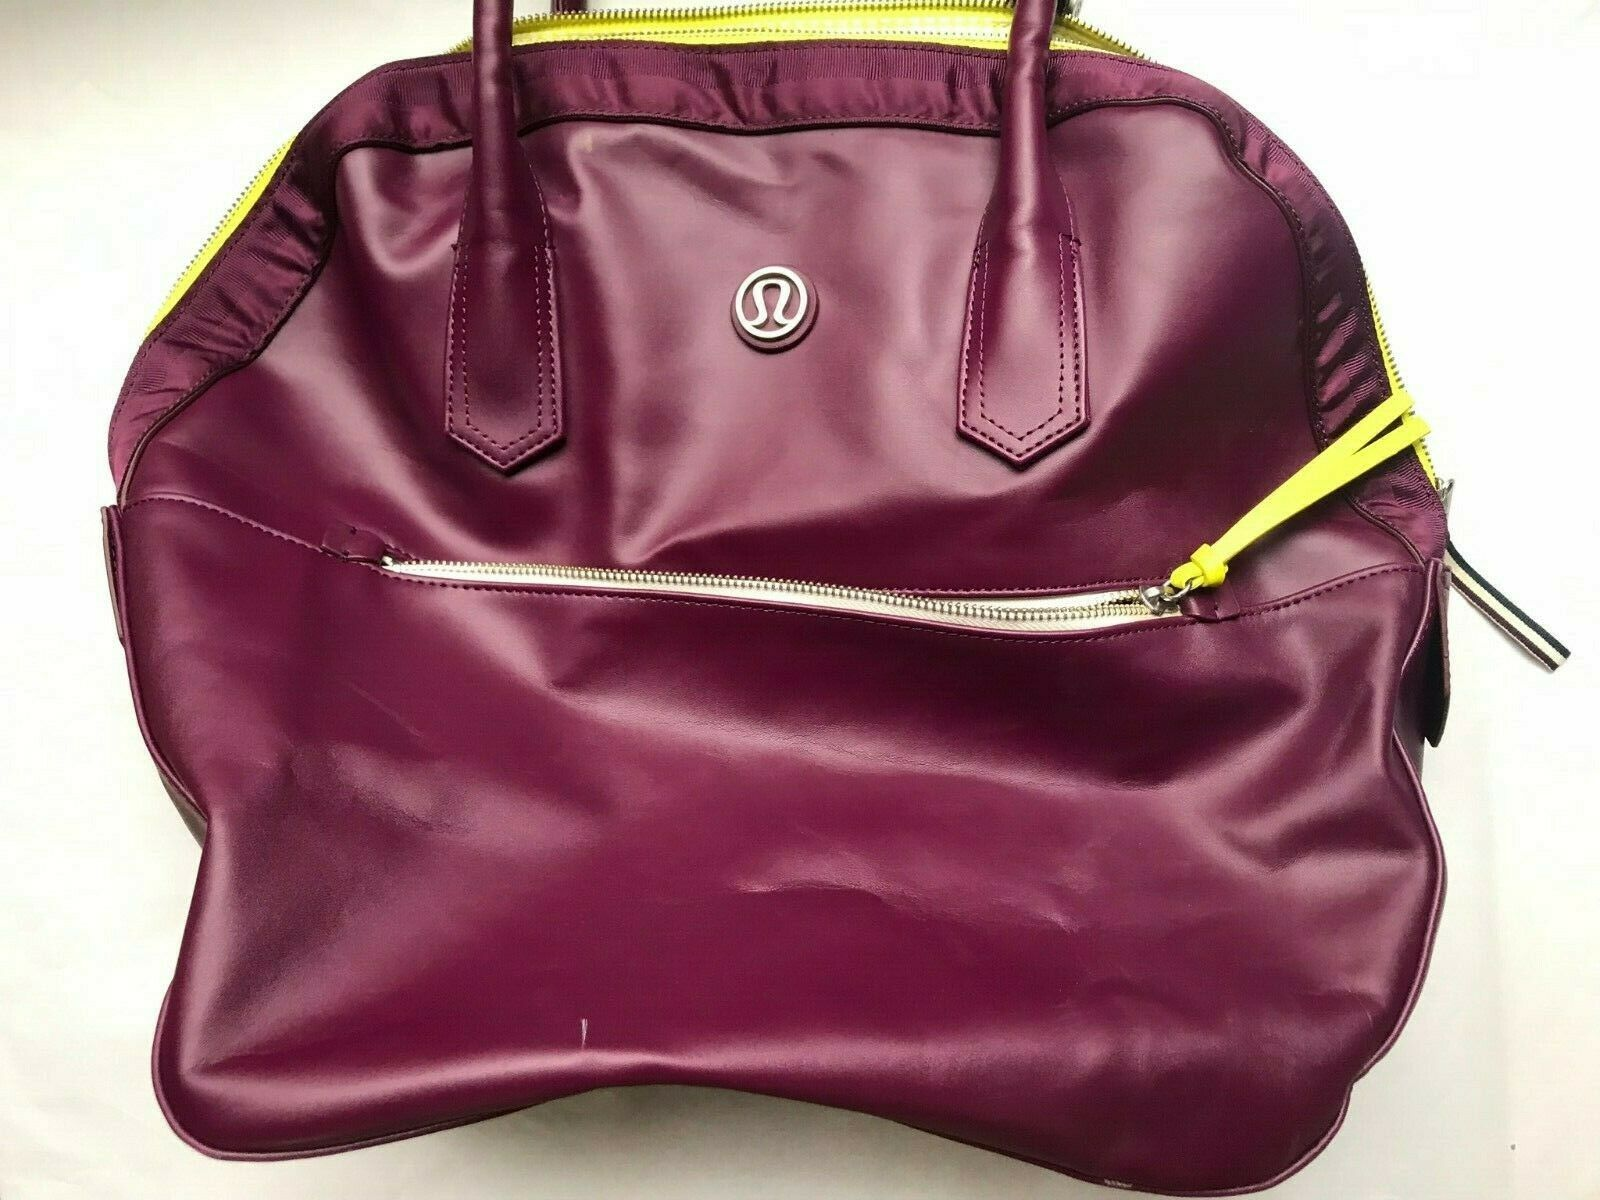 Lululemon Large Gym/School/Work Purple Poly Shoulder Bag